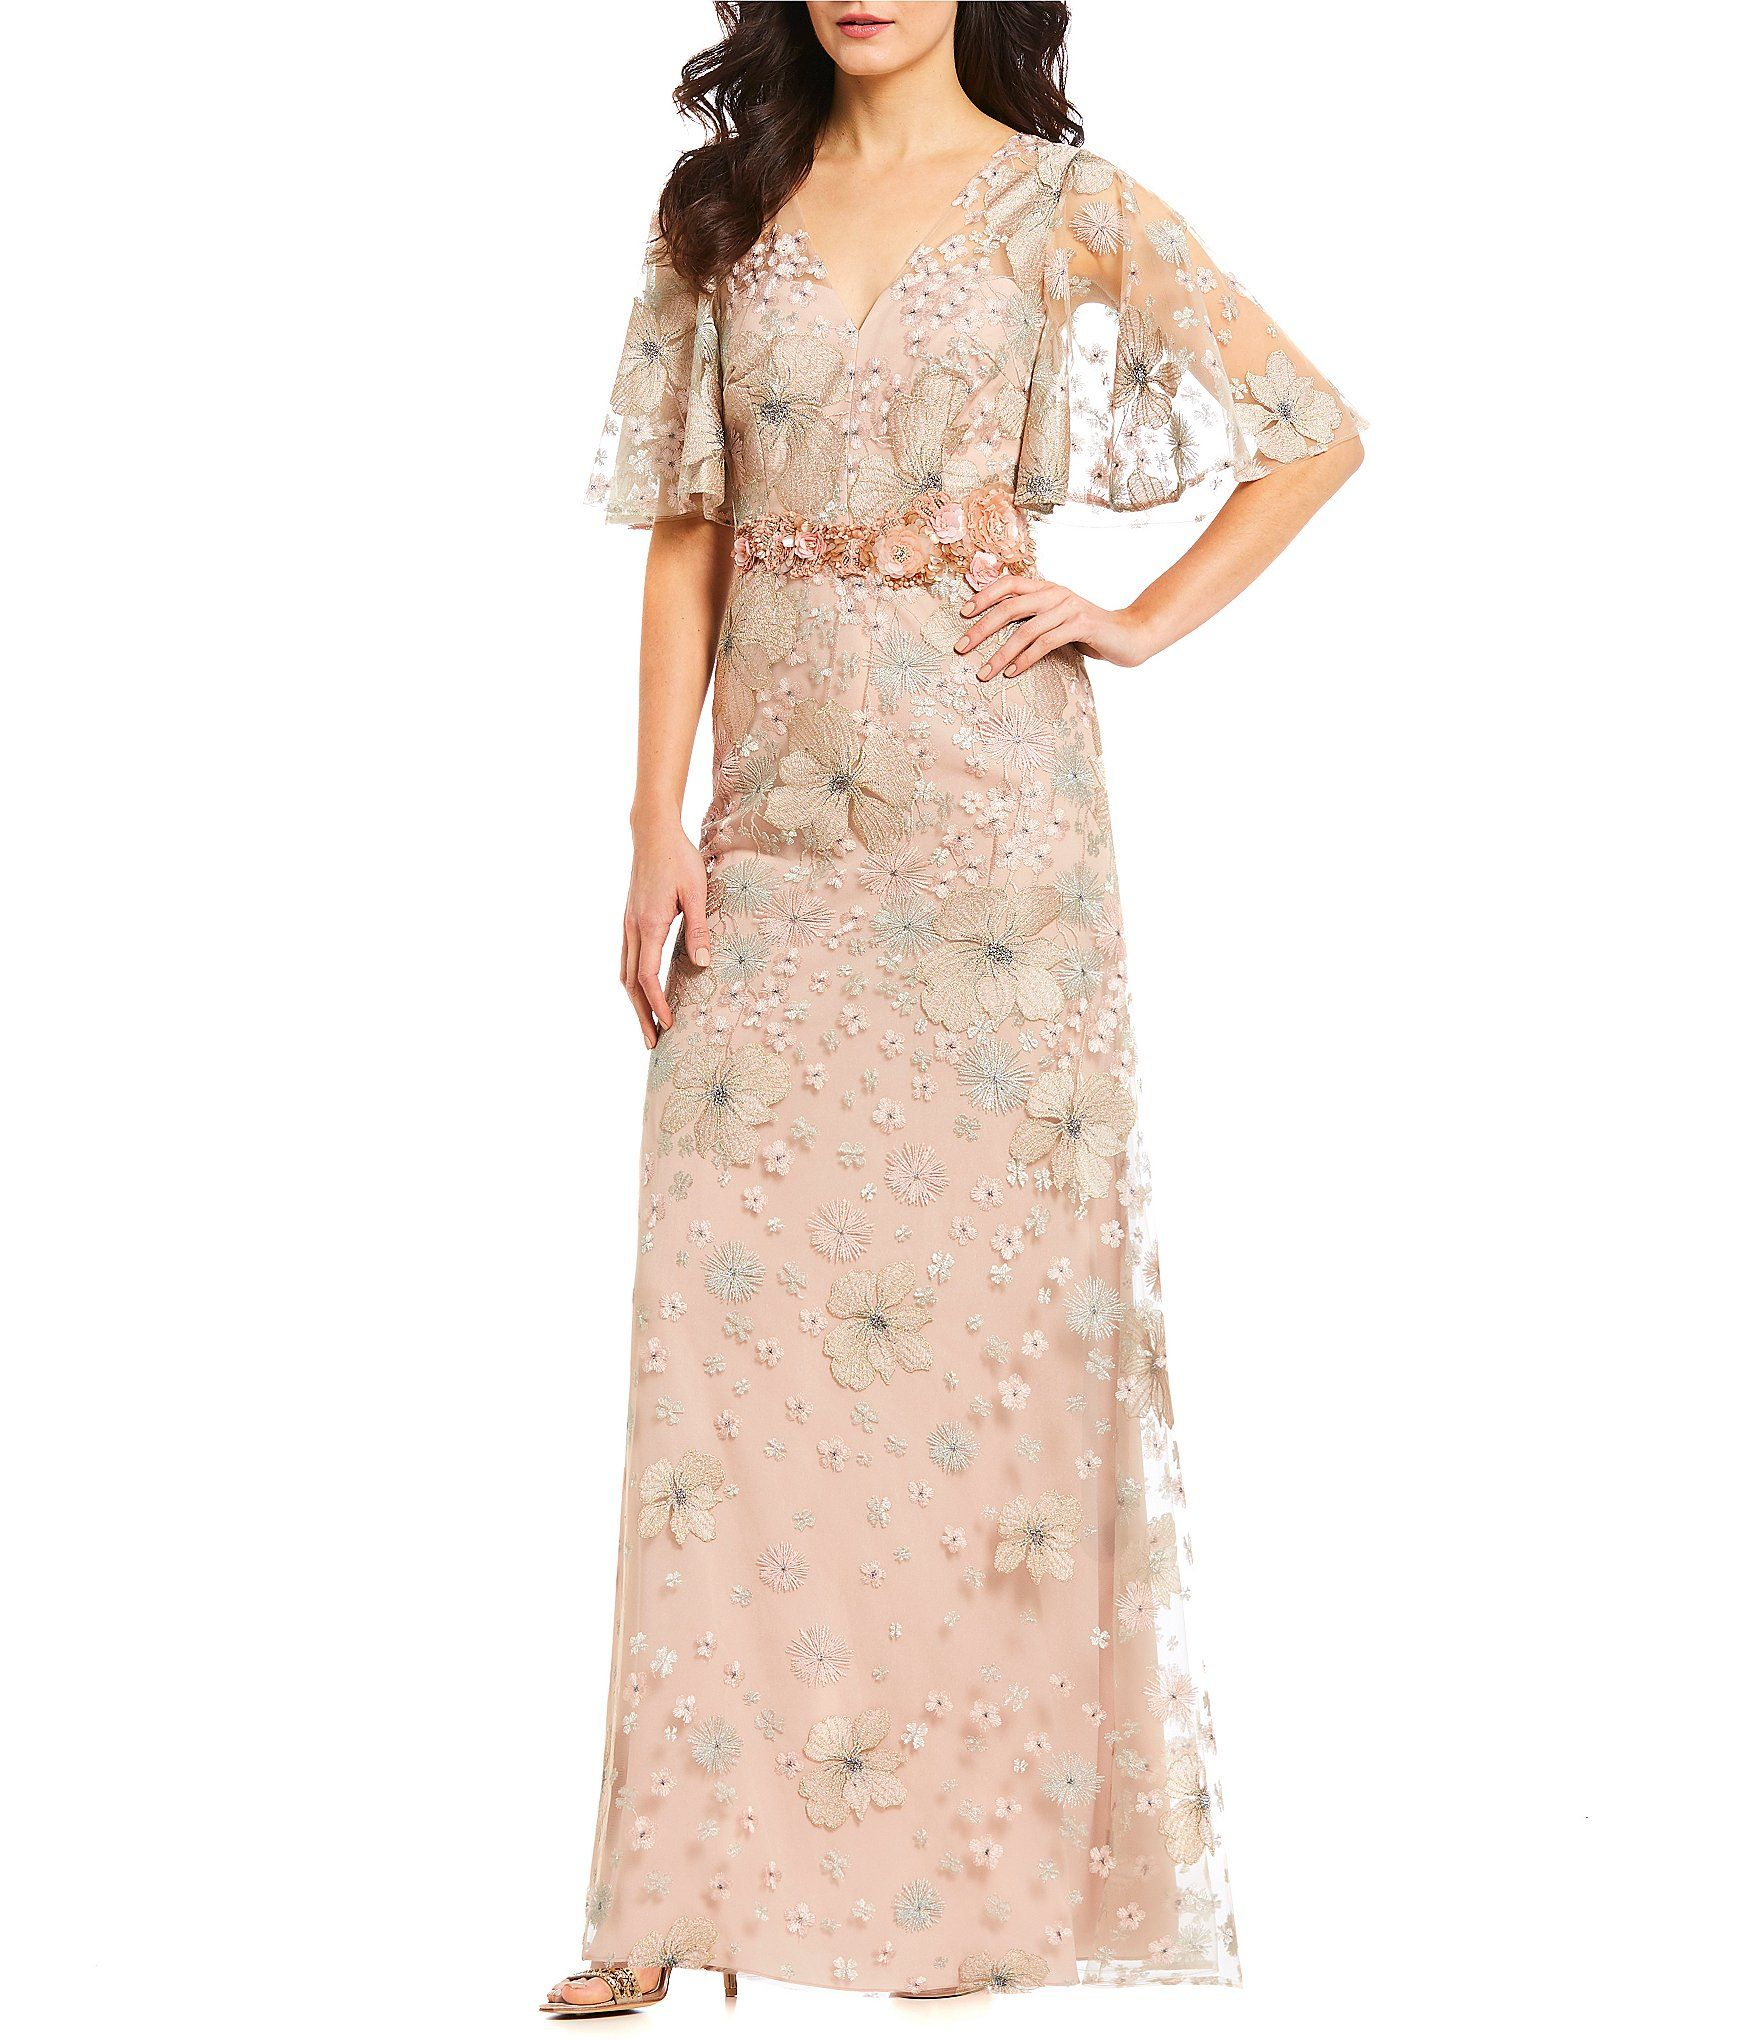 ffc2e15c771 Shop for David Meister Soft Embroidered Beaded Gown at Dillards.com. Visit  Dillards.com to find clothing